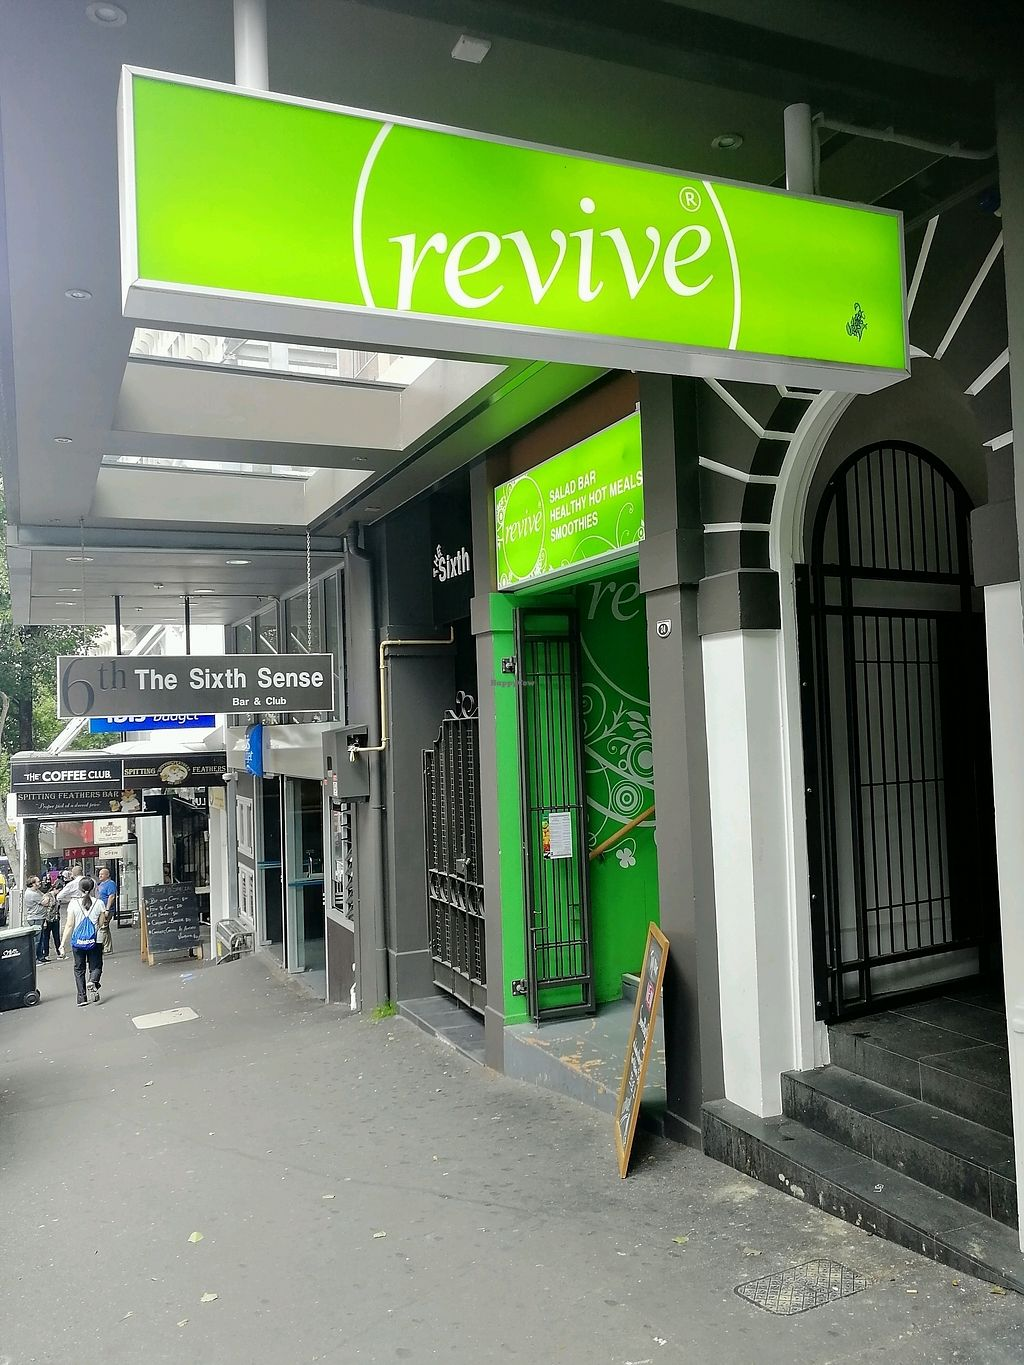 """Photo of Revive Vegetarian Cafe - Wyndham St  by <a href=""""/members/profile/salioma"""">salioma</a> <br/>The entrance <br/> February 20, 2018  - <a href='/contact/abuse/image/4893/361532'>Report</a>"""